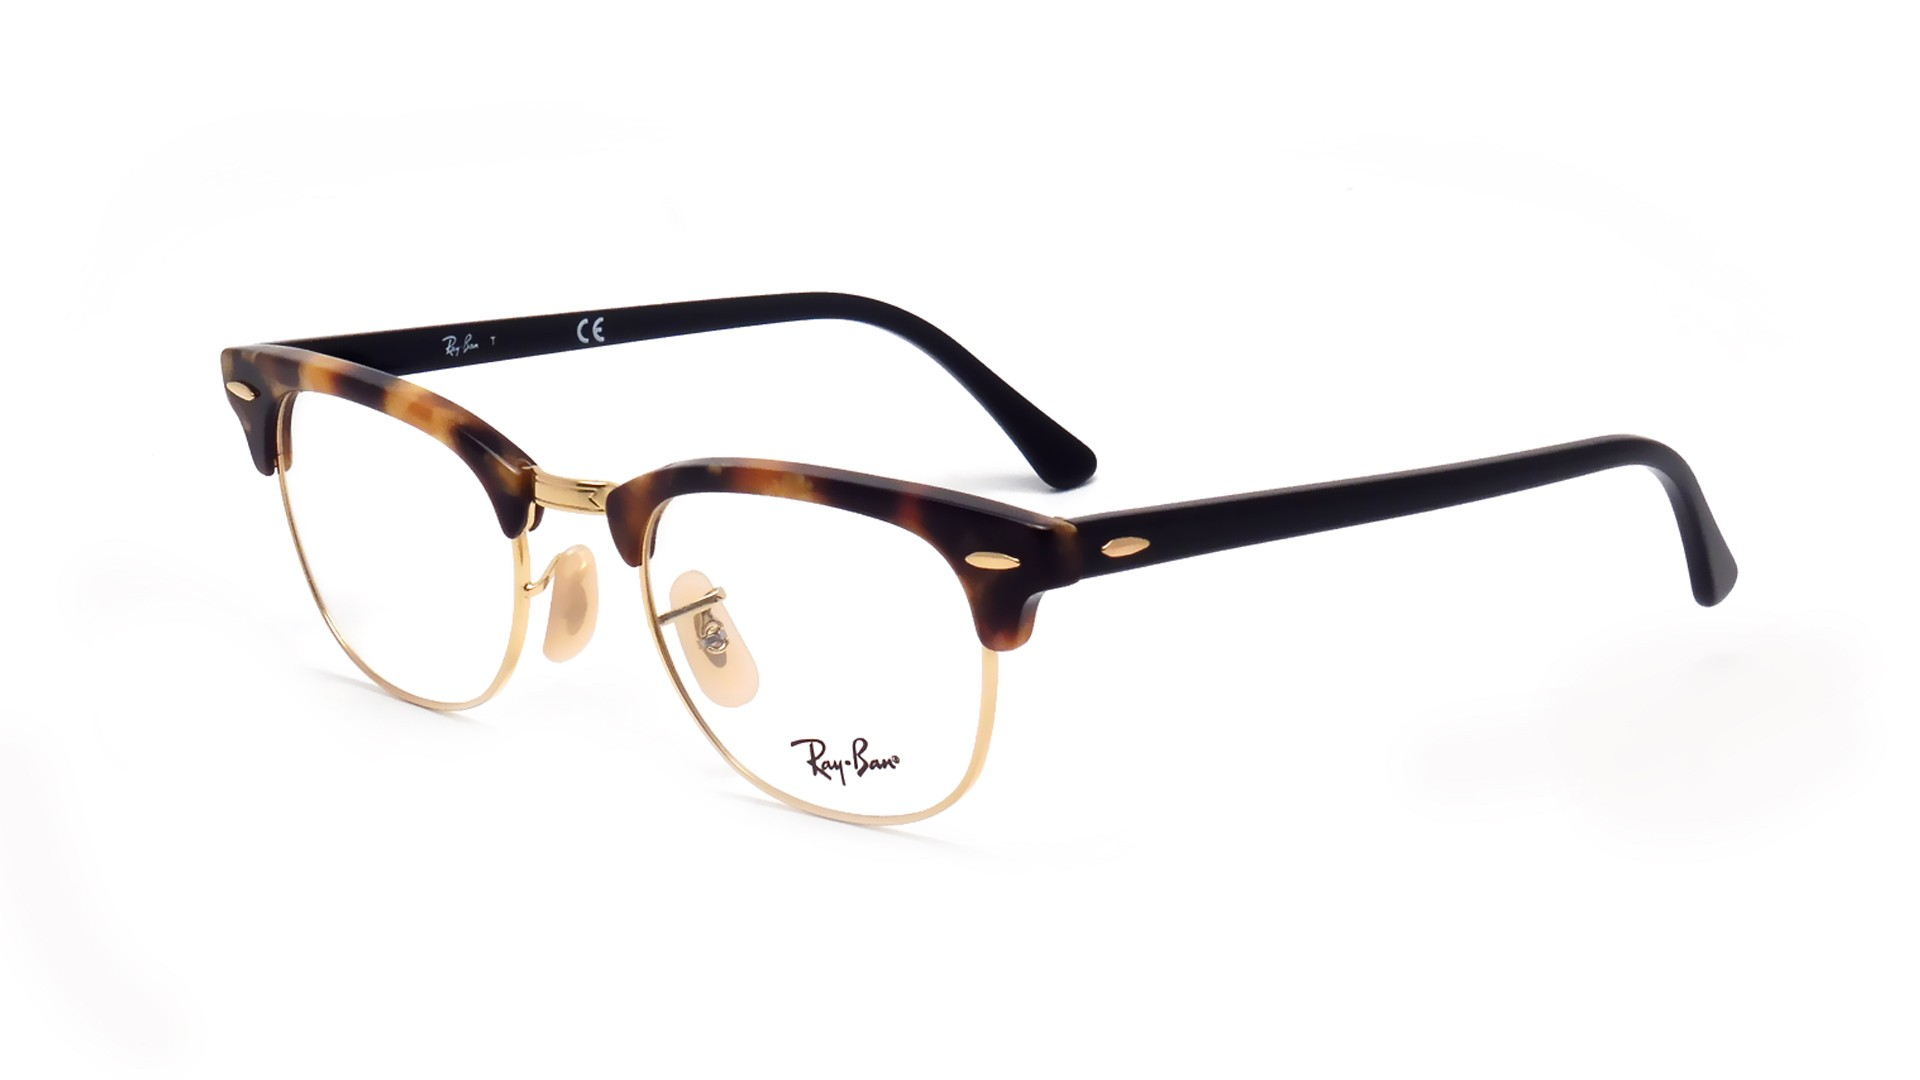 Ray Ban Clubmaster Vue Femme